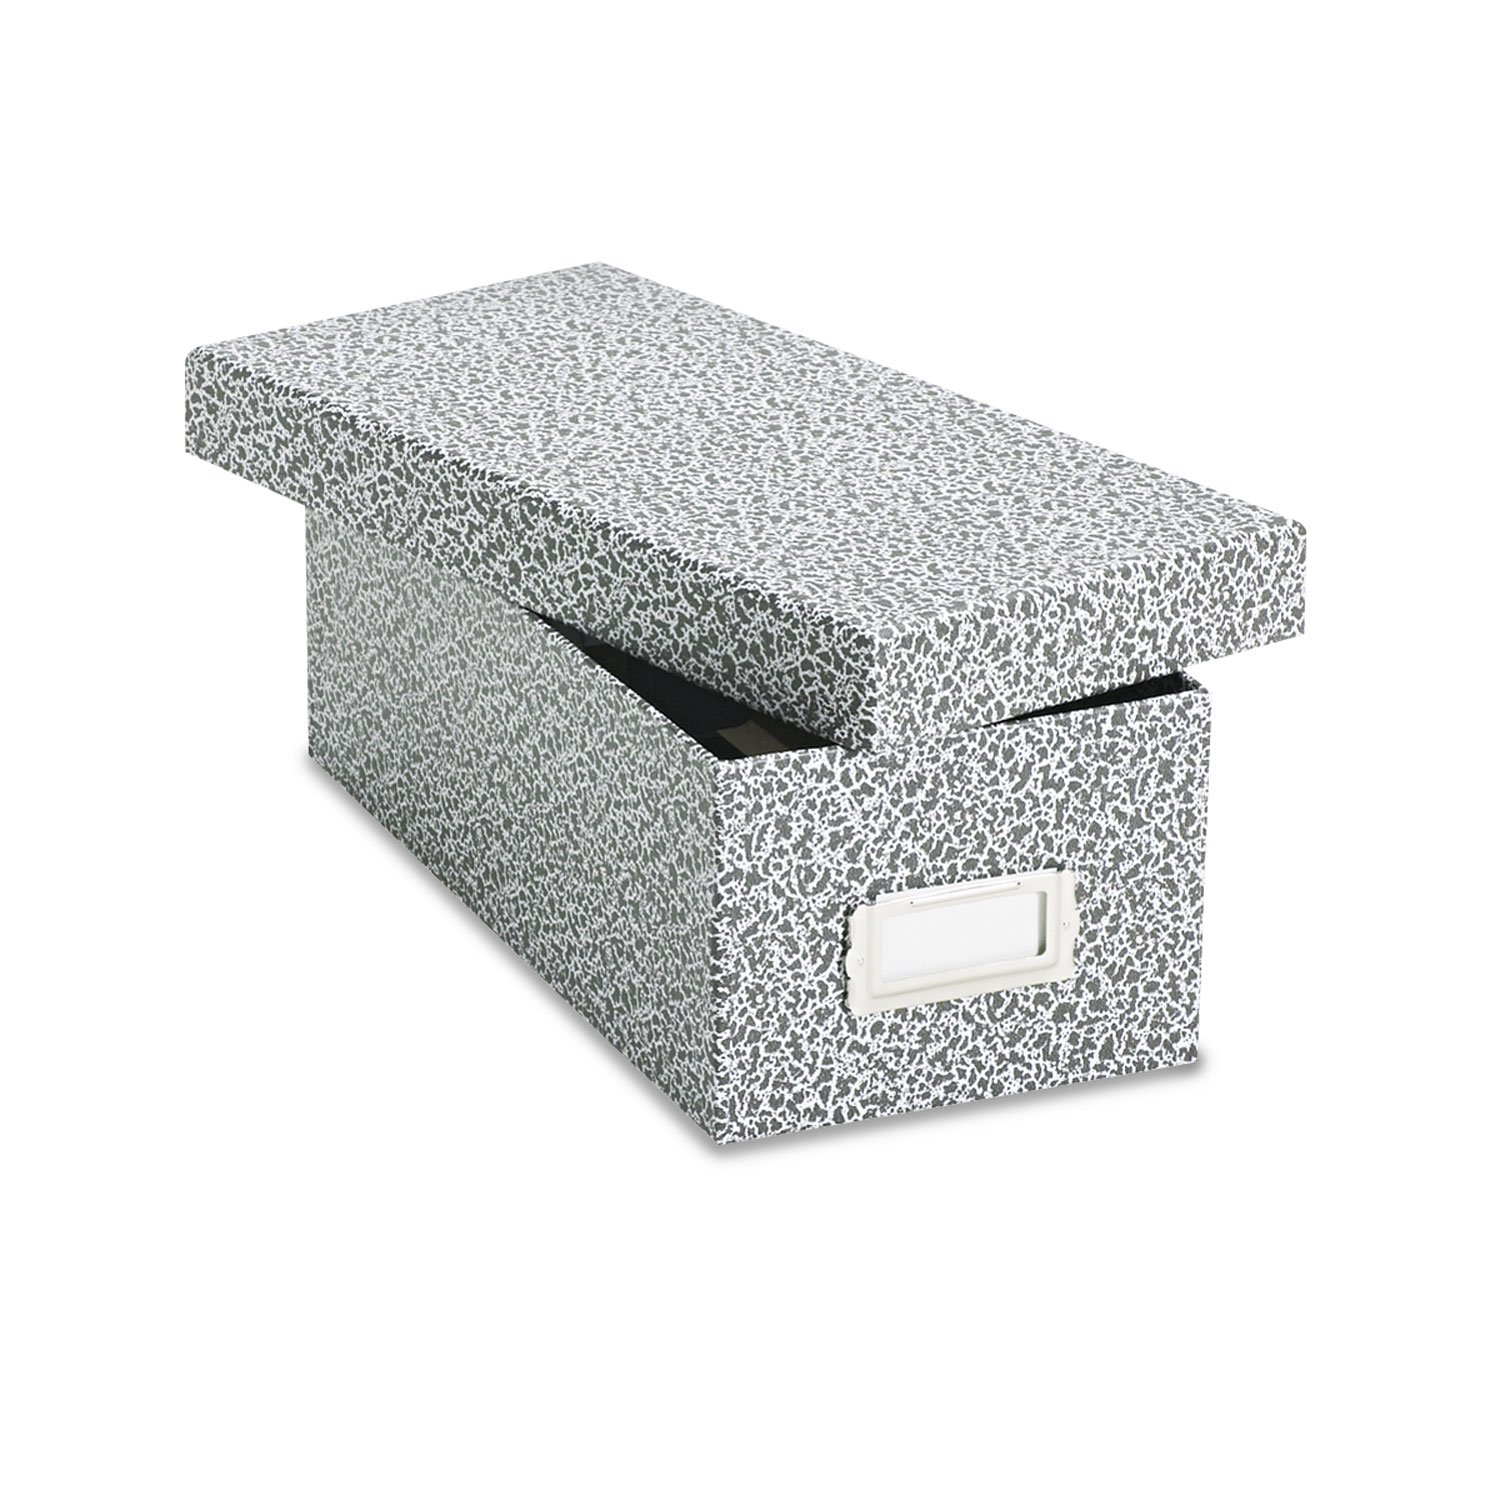 Oxford 40588 Reinforced Board Card File, Lift-Off Cover, Holds 1,200 3 x 5 Cards, Black/White by Oxford